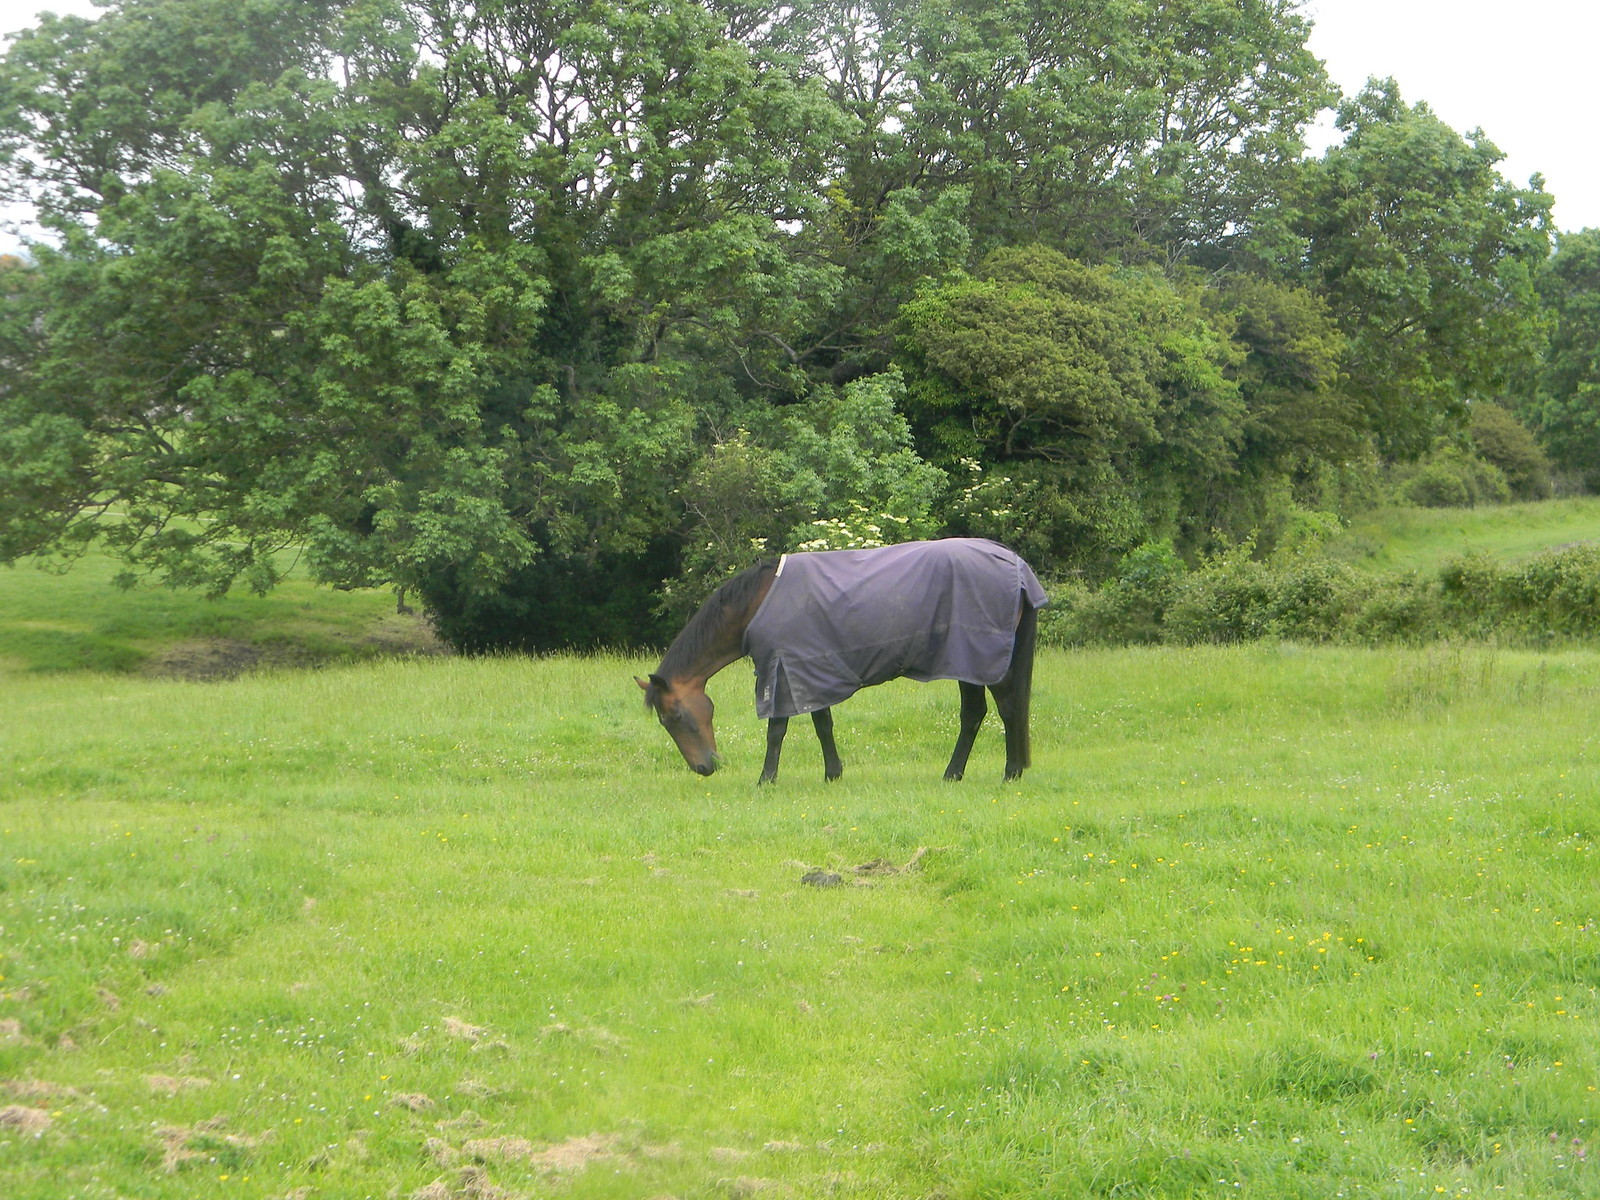 Horse in a field Lewes to Berwick